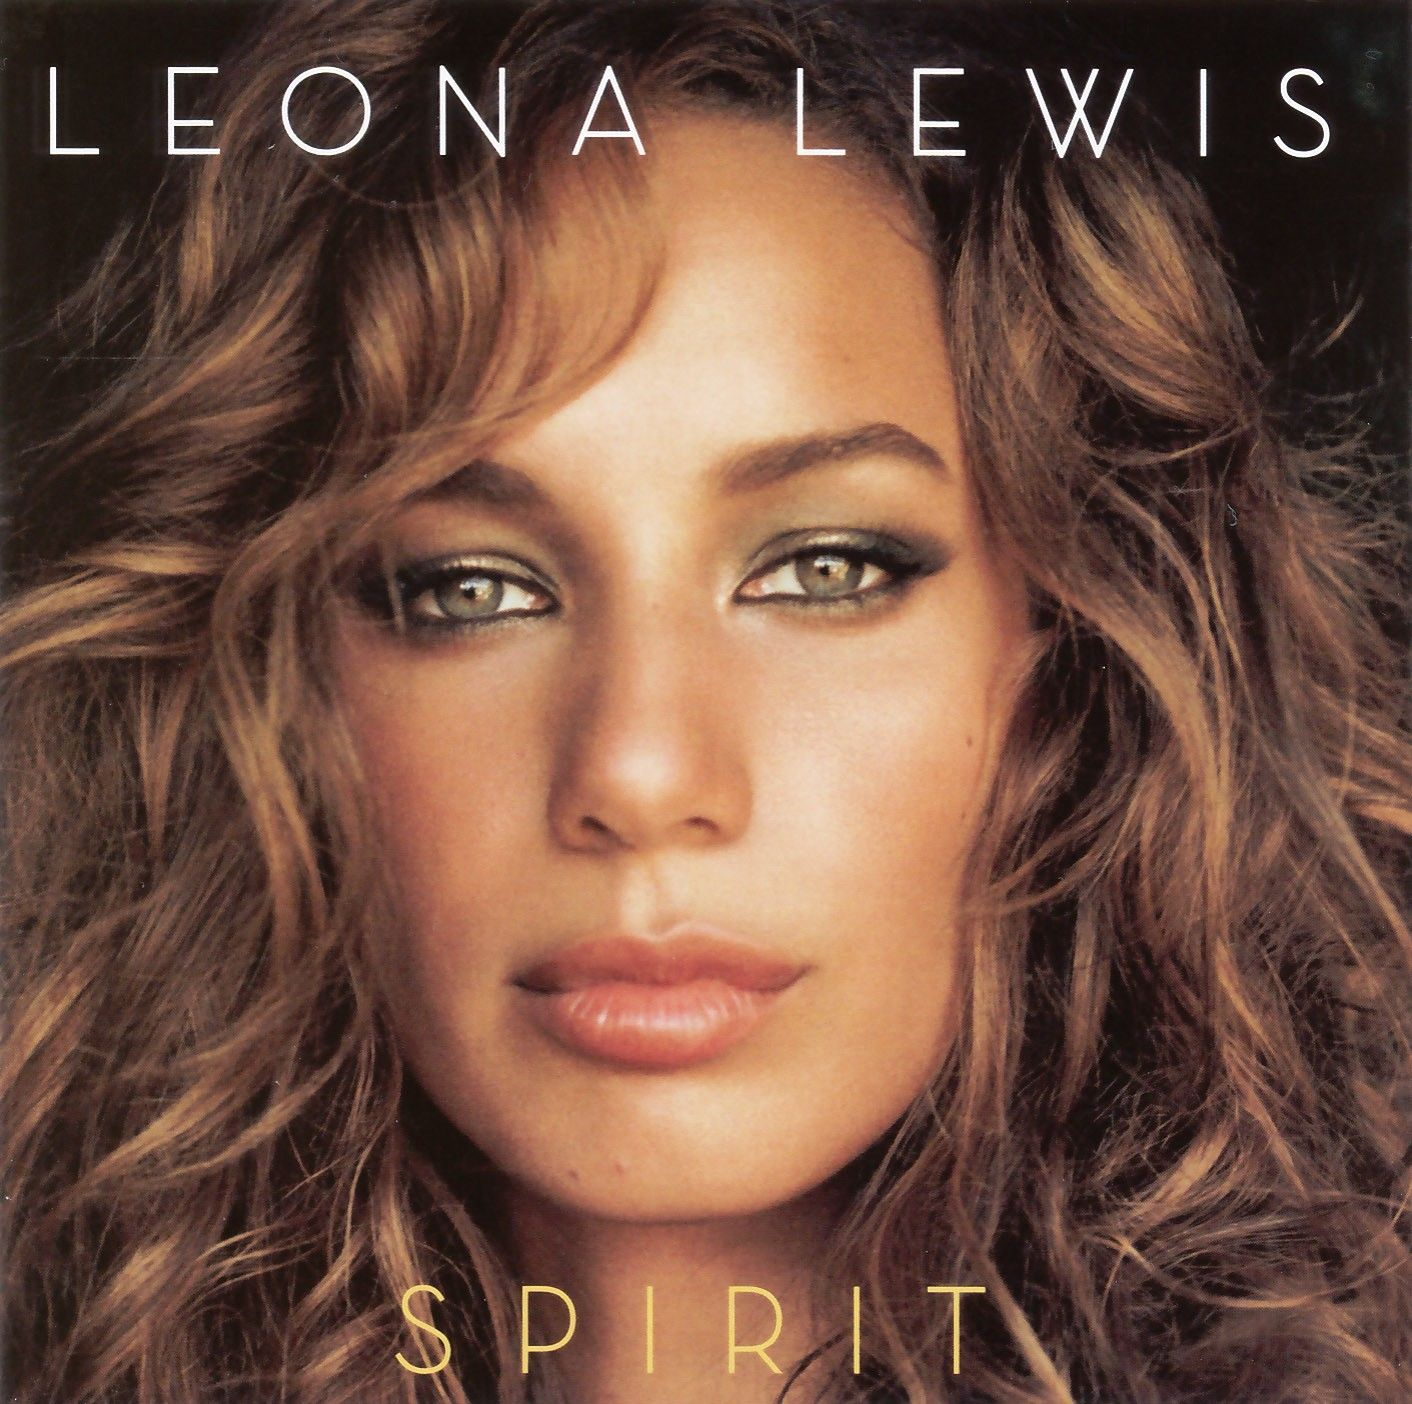 this is the second album ' spirit' which was released by british pop